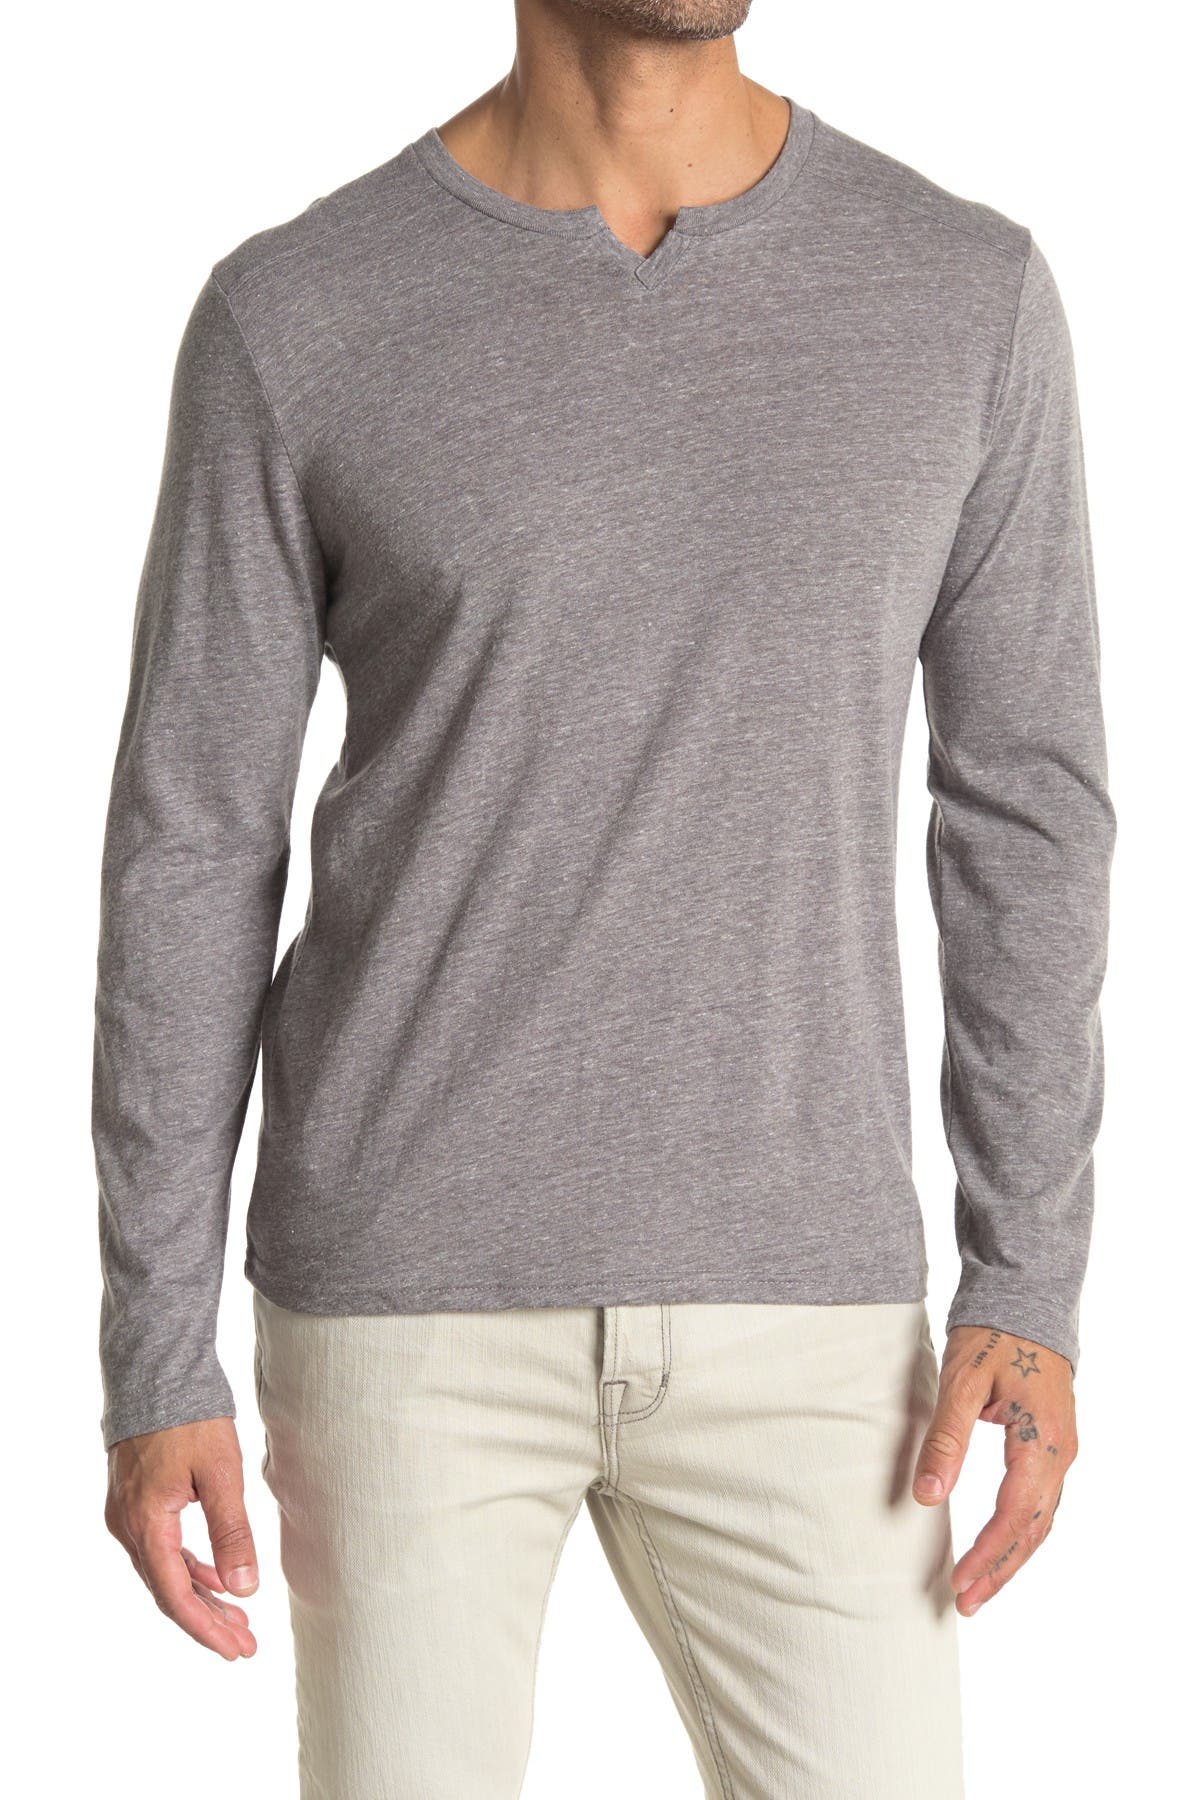 Image of Threads 4 Thought Notch Neck Long Sleeve Knit